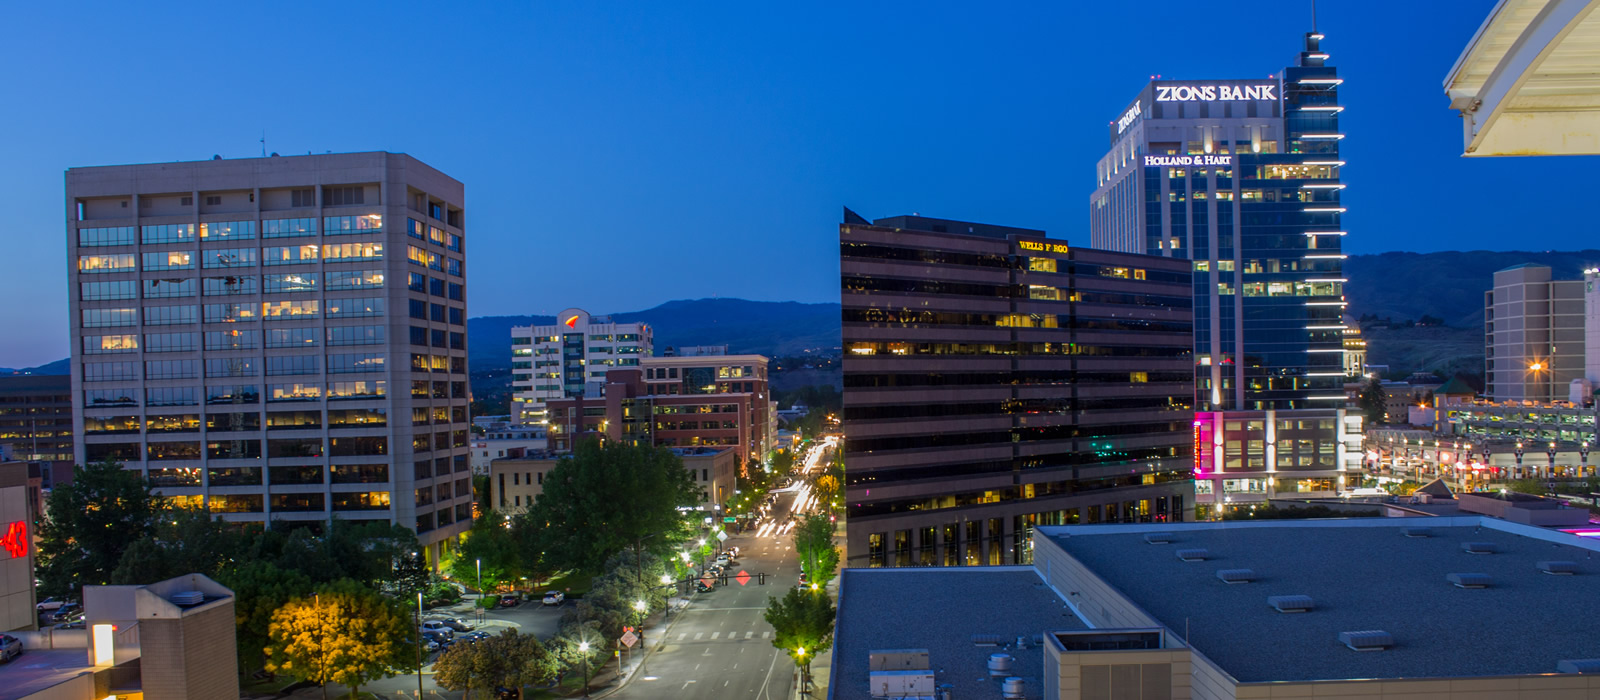 Downtown Boise Idaho at night